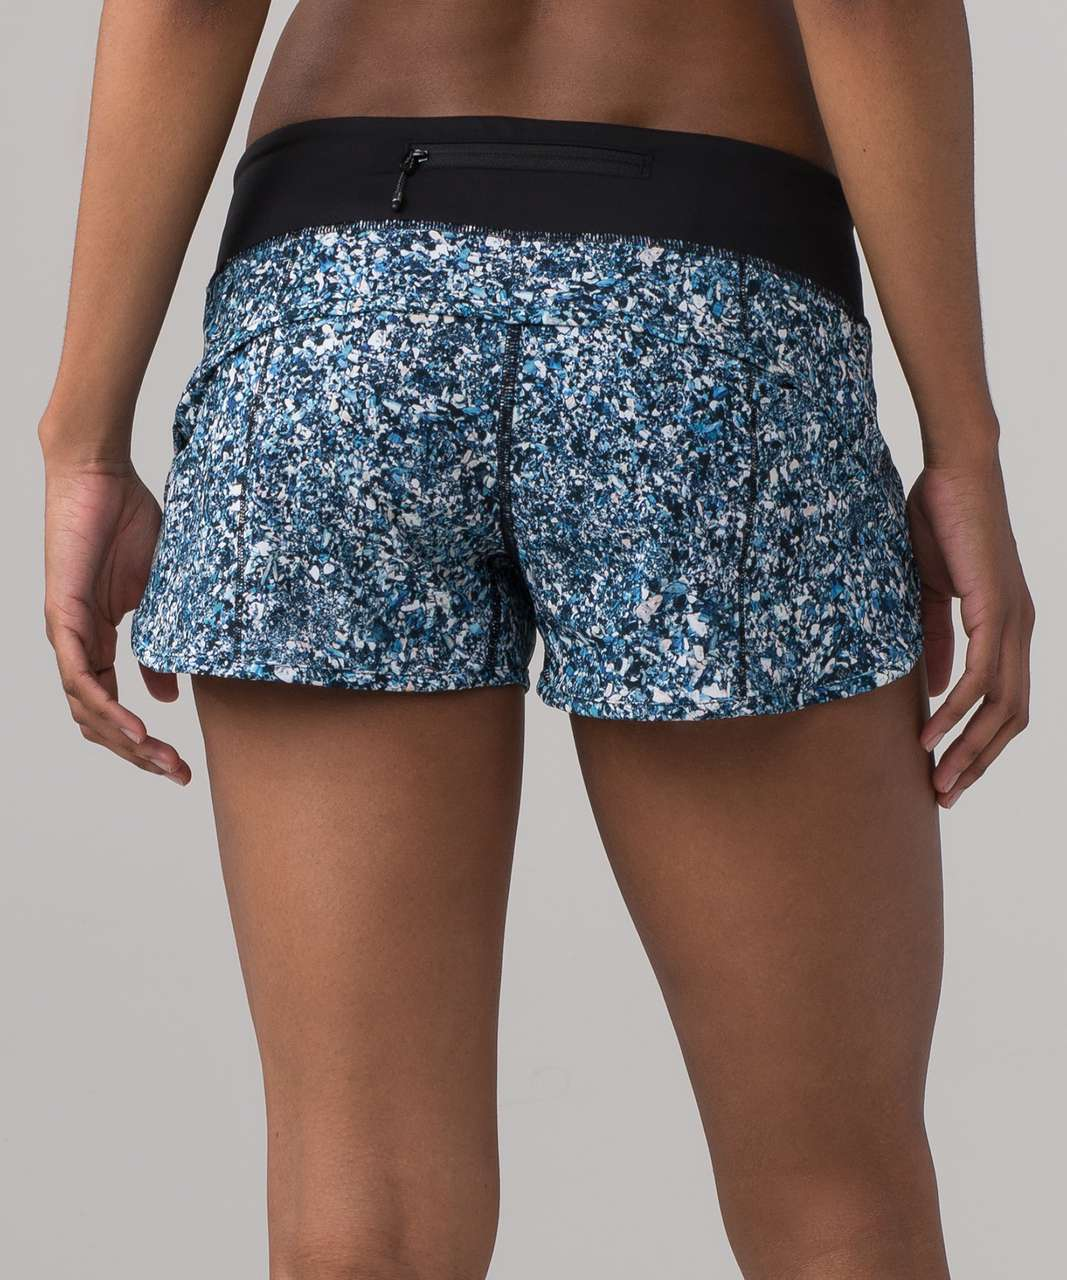 Lululemon Speed Short (SeaWheeze) - Tofino Shells Multi Black / Black